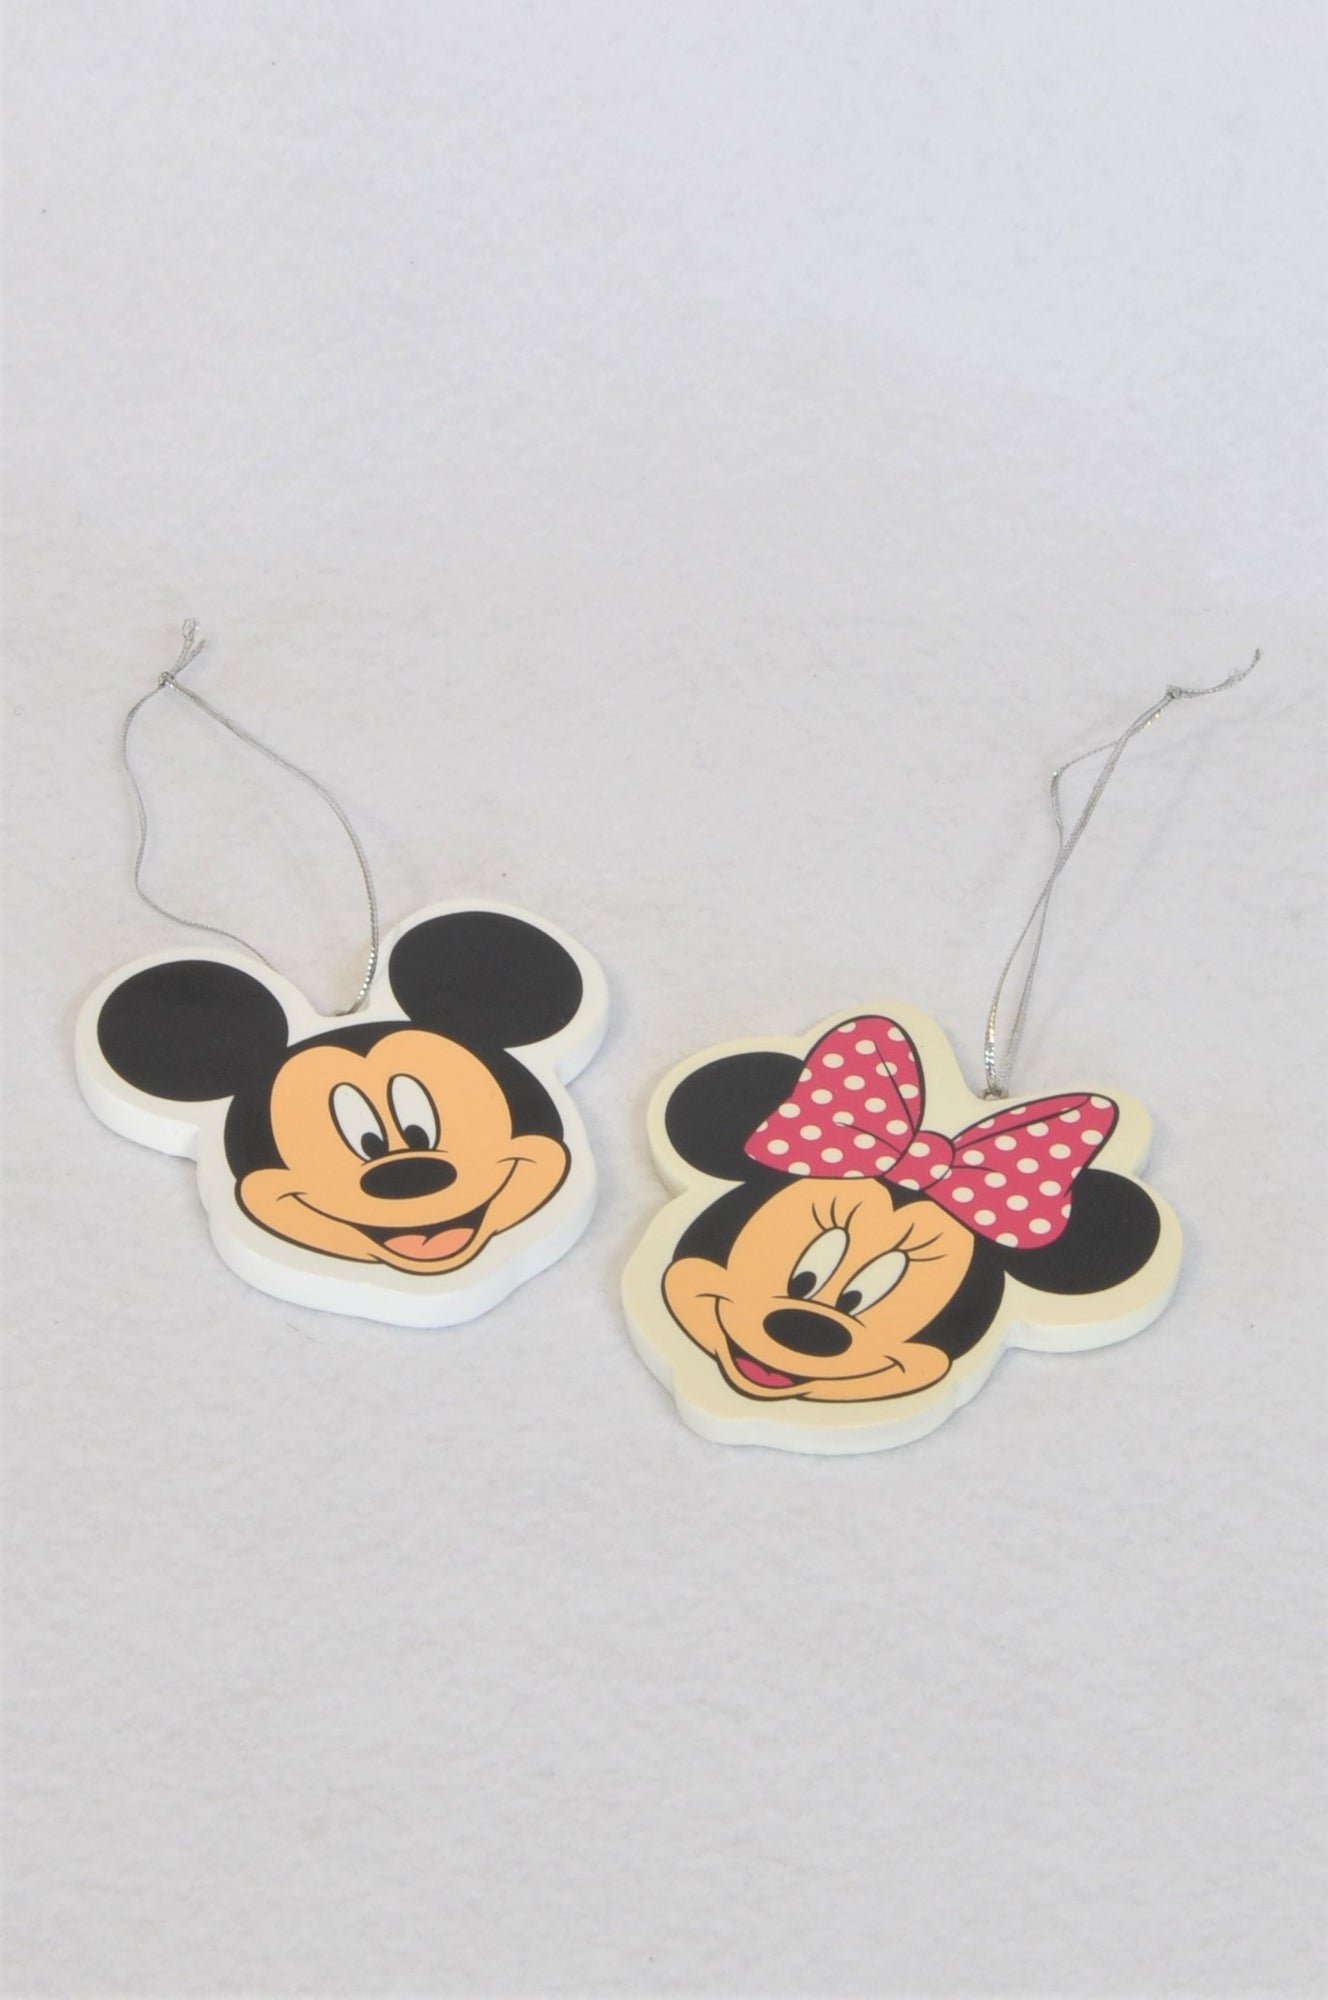 Disney Mickey And Minnie Mouse Ornaments Decor Unisex All Ages